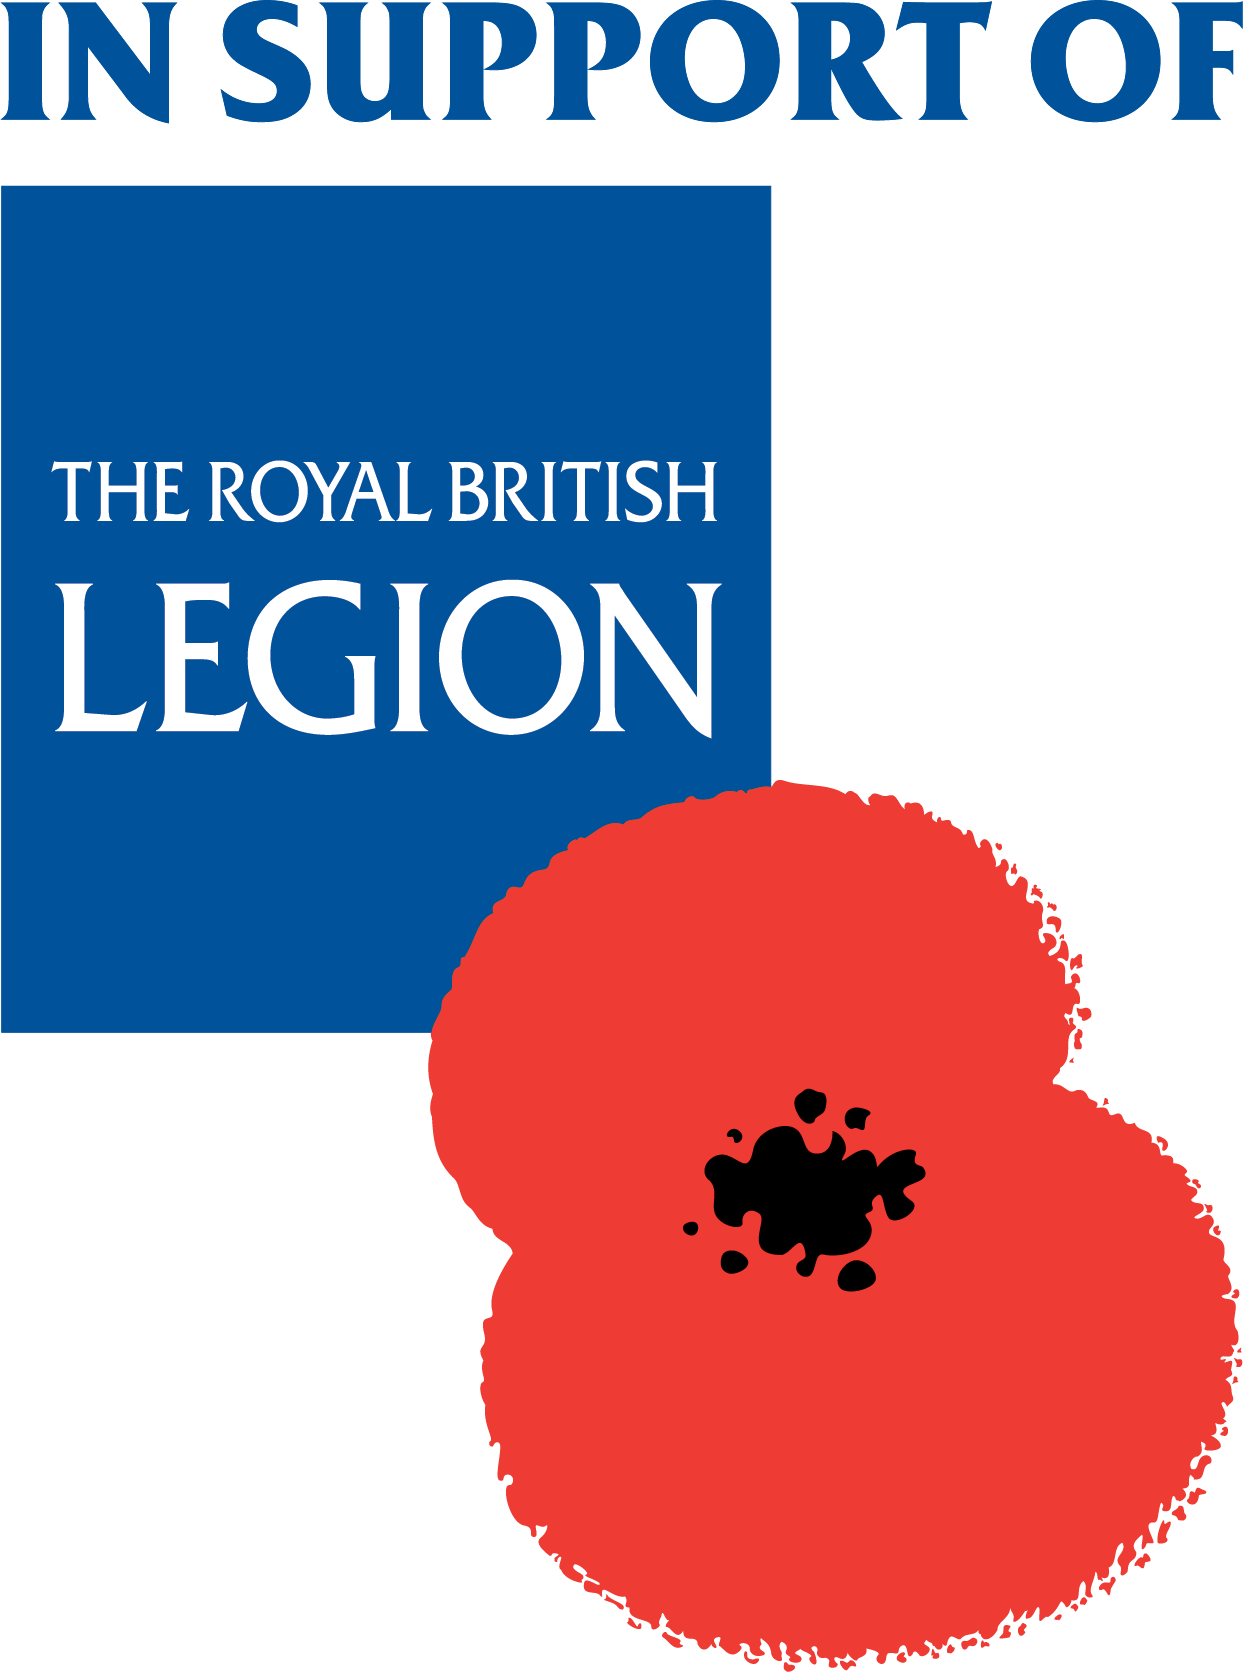 find out more about the The Royal British Legion